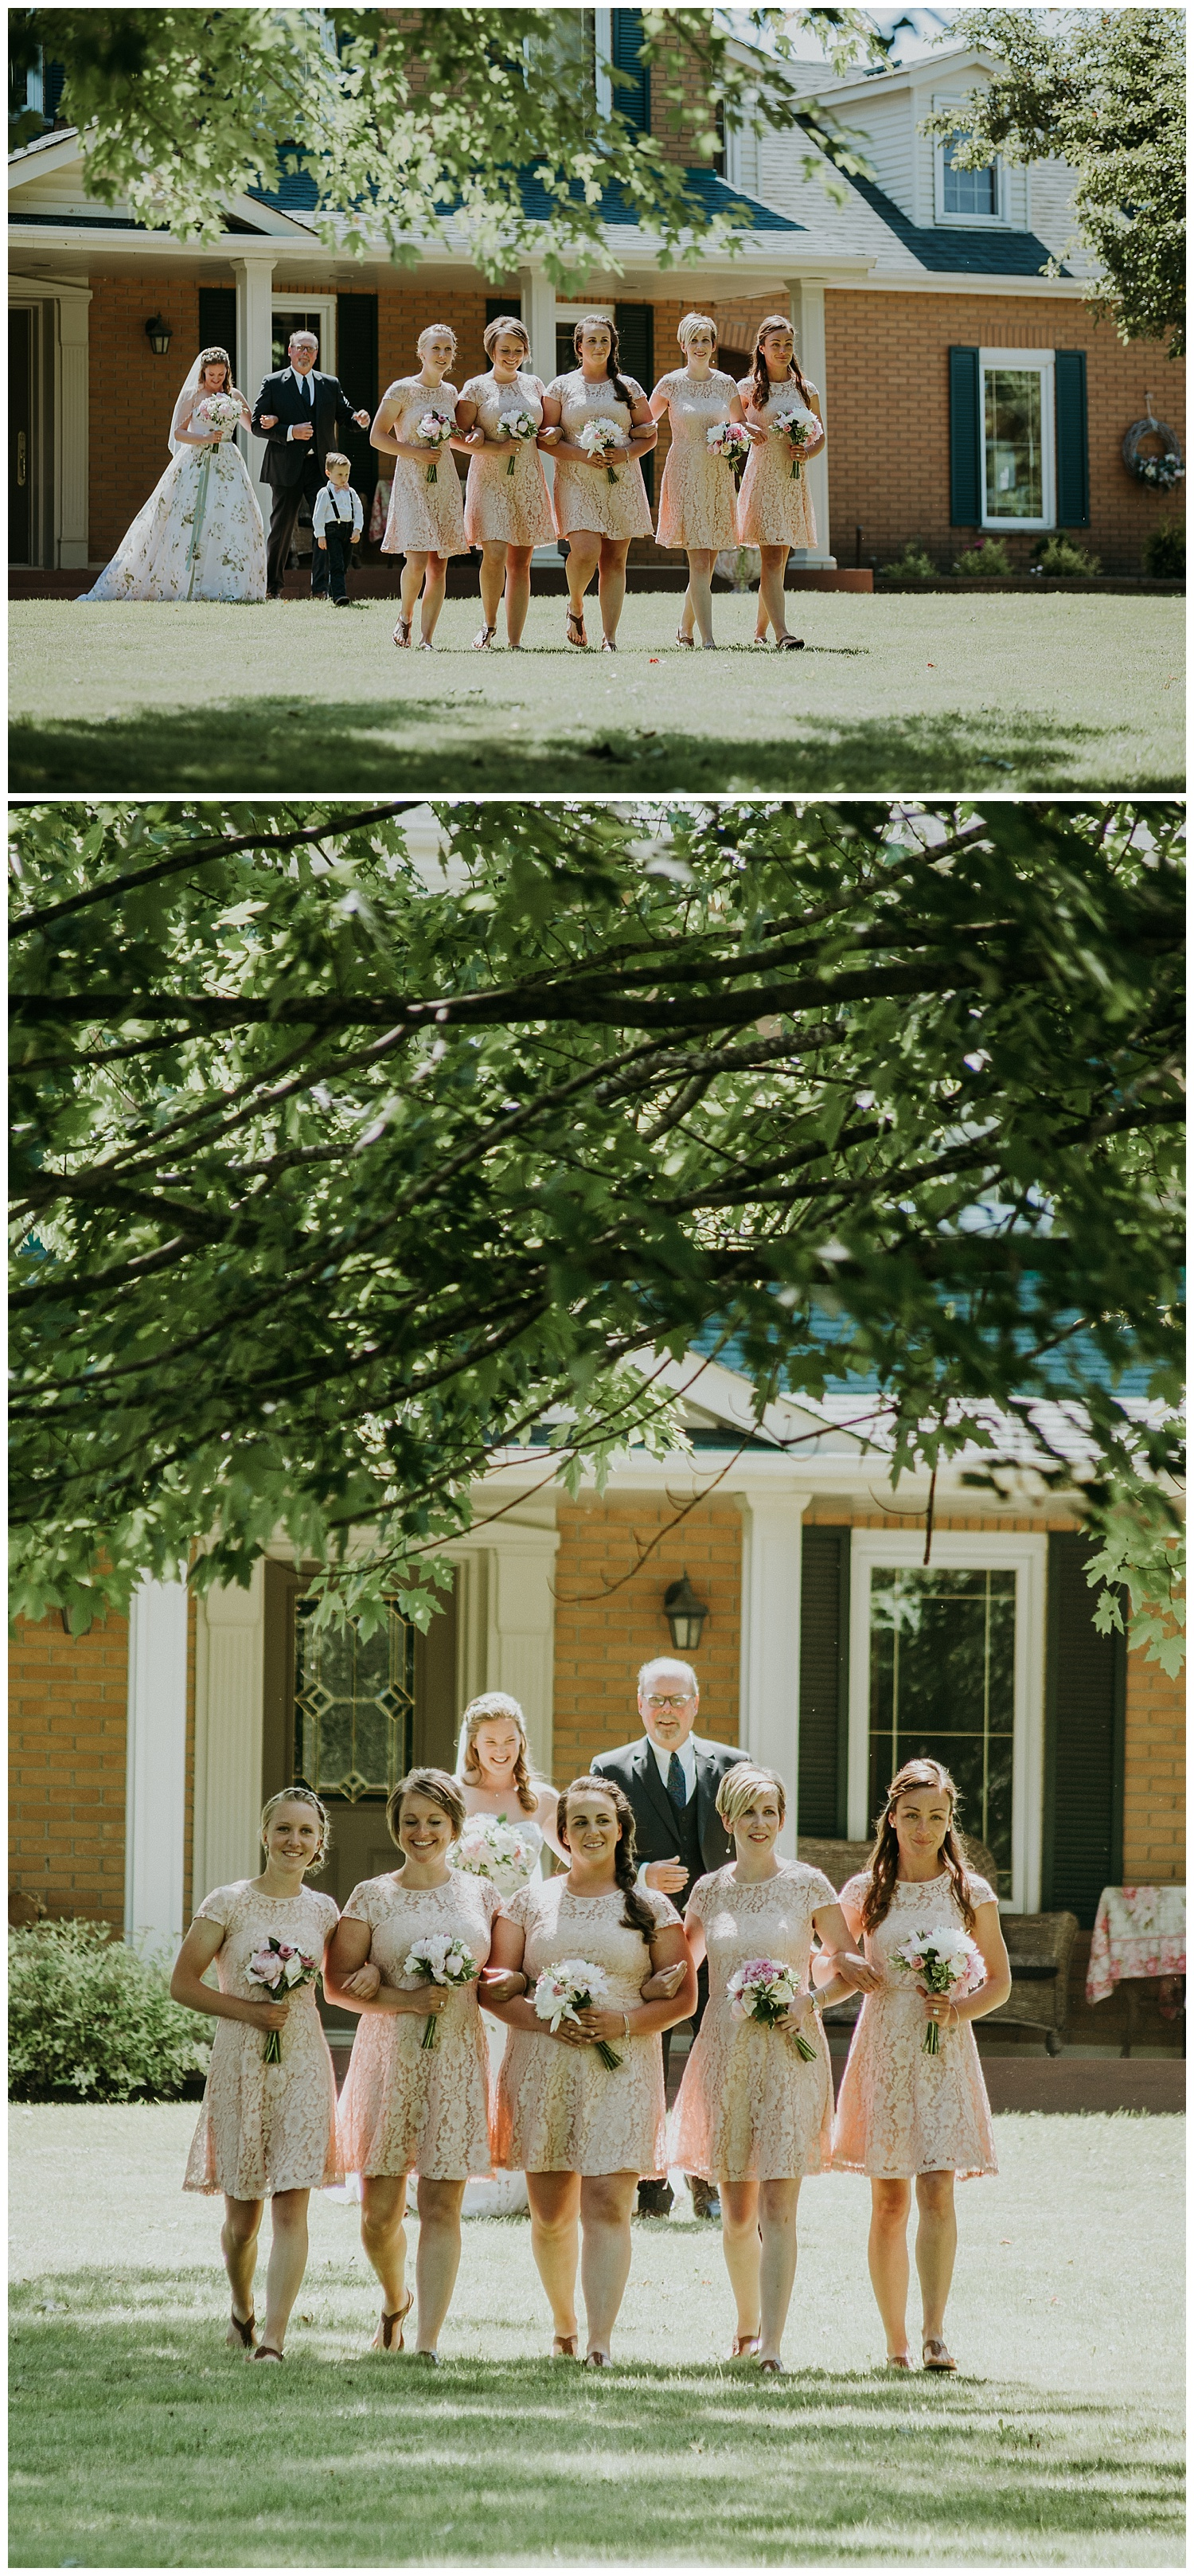 Front Yard Ceremony in Trenton, Ontario   Holly McMurter Photographs